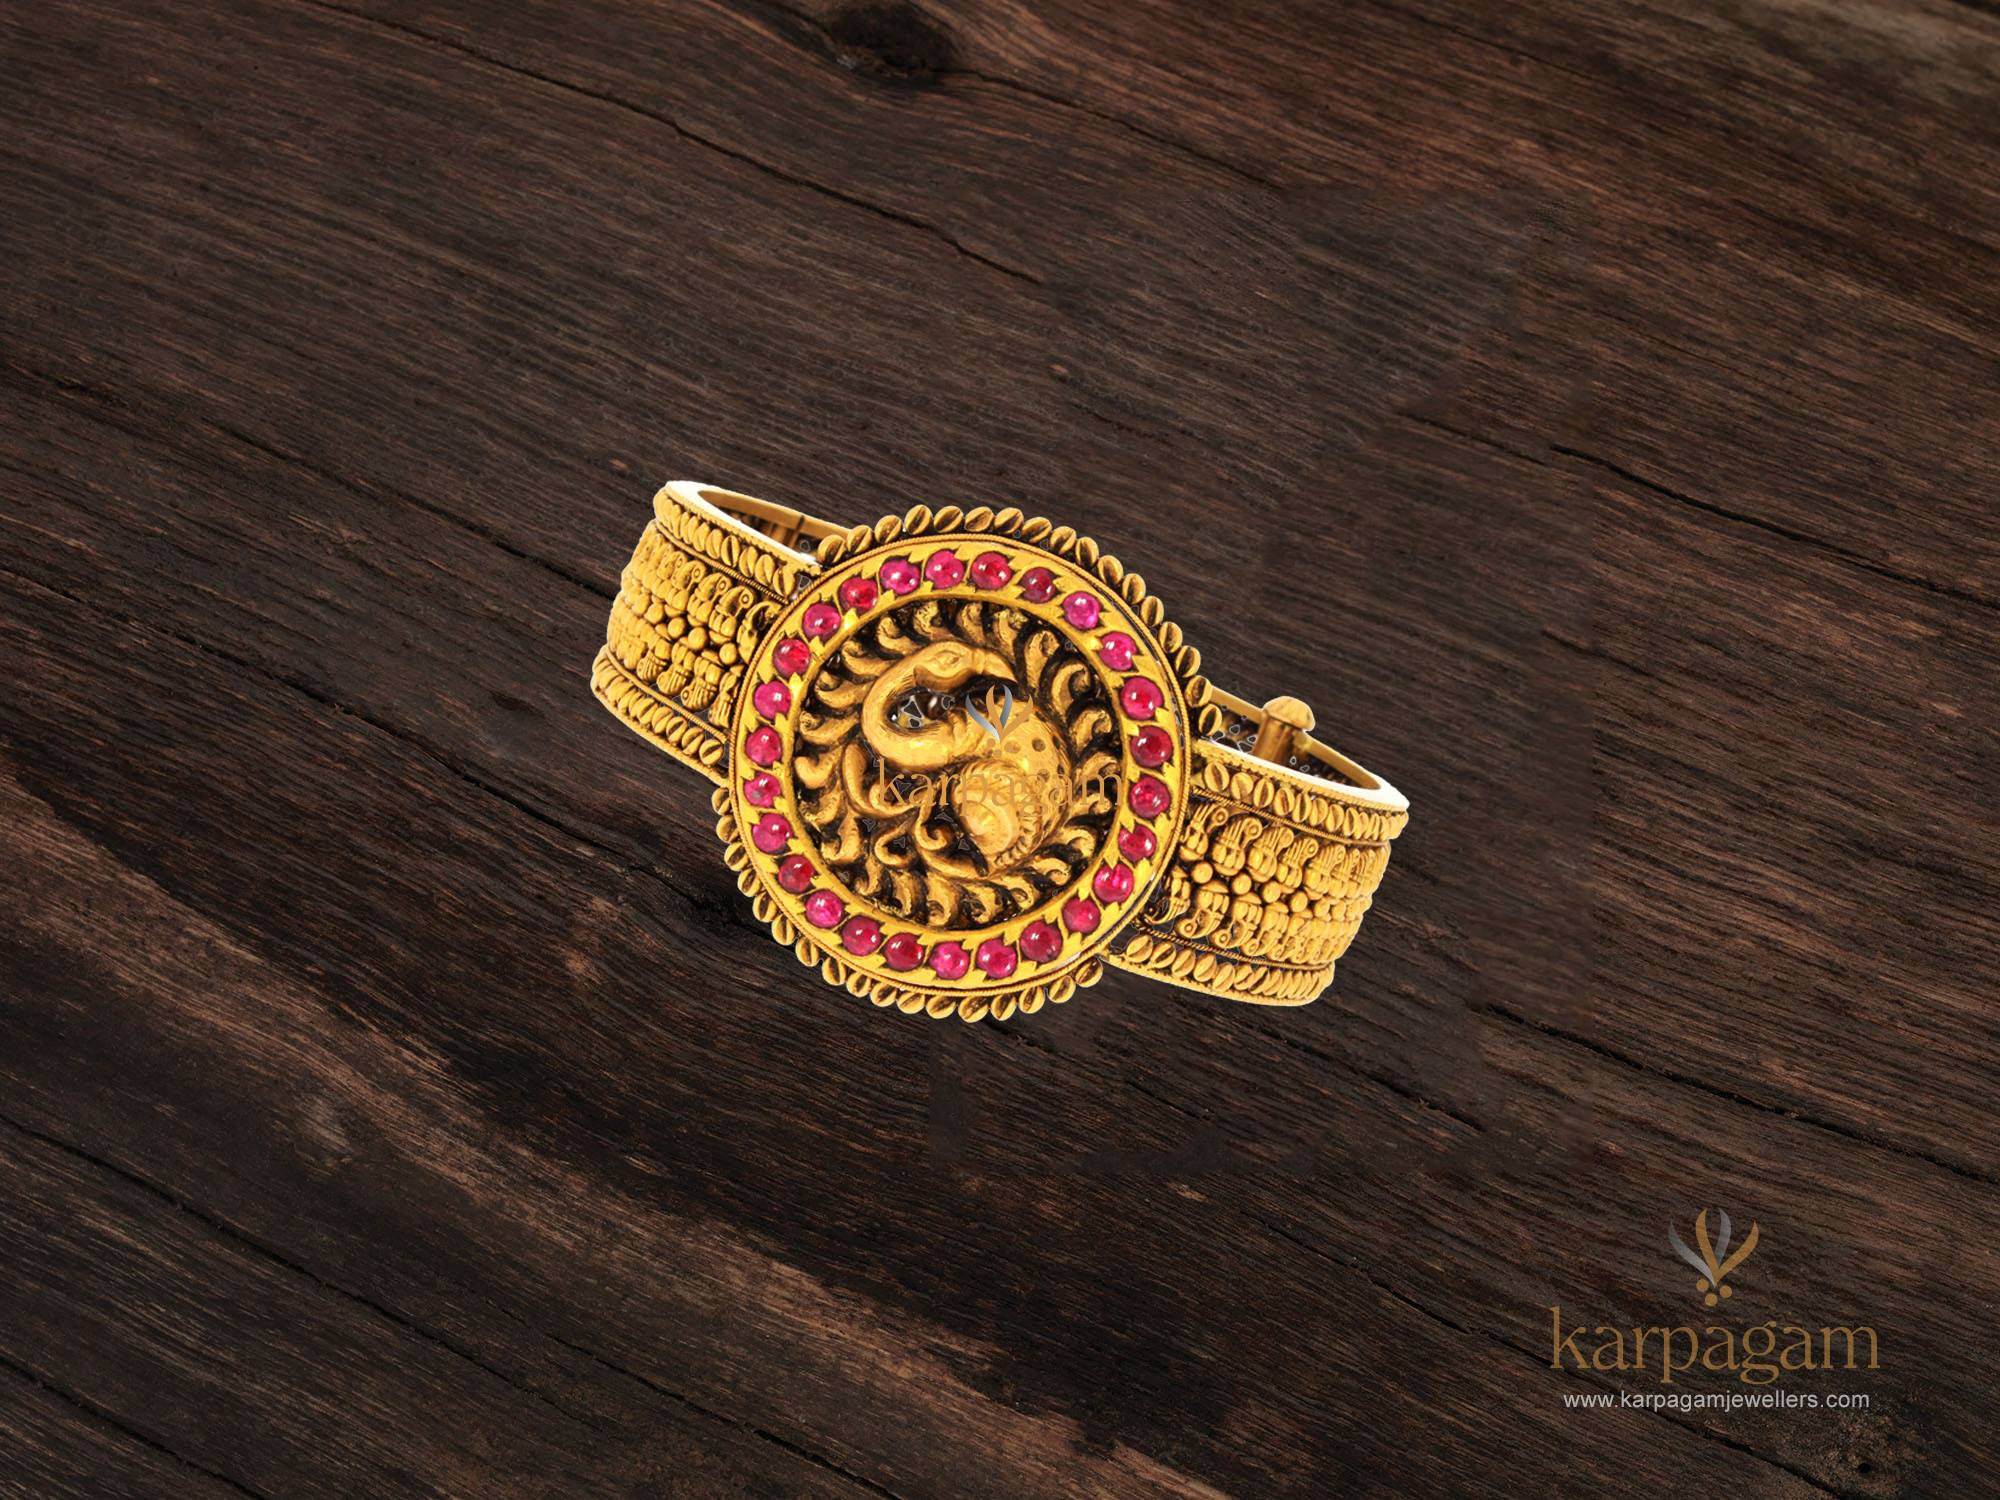 gold kada collection from karpagam jewellers 4